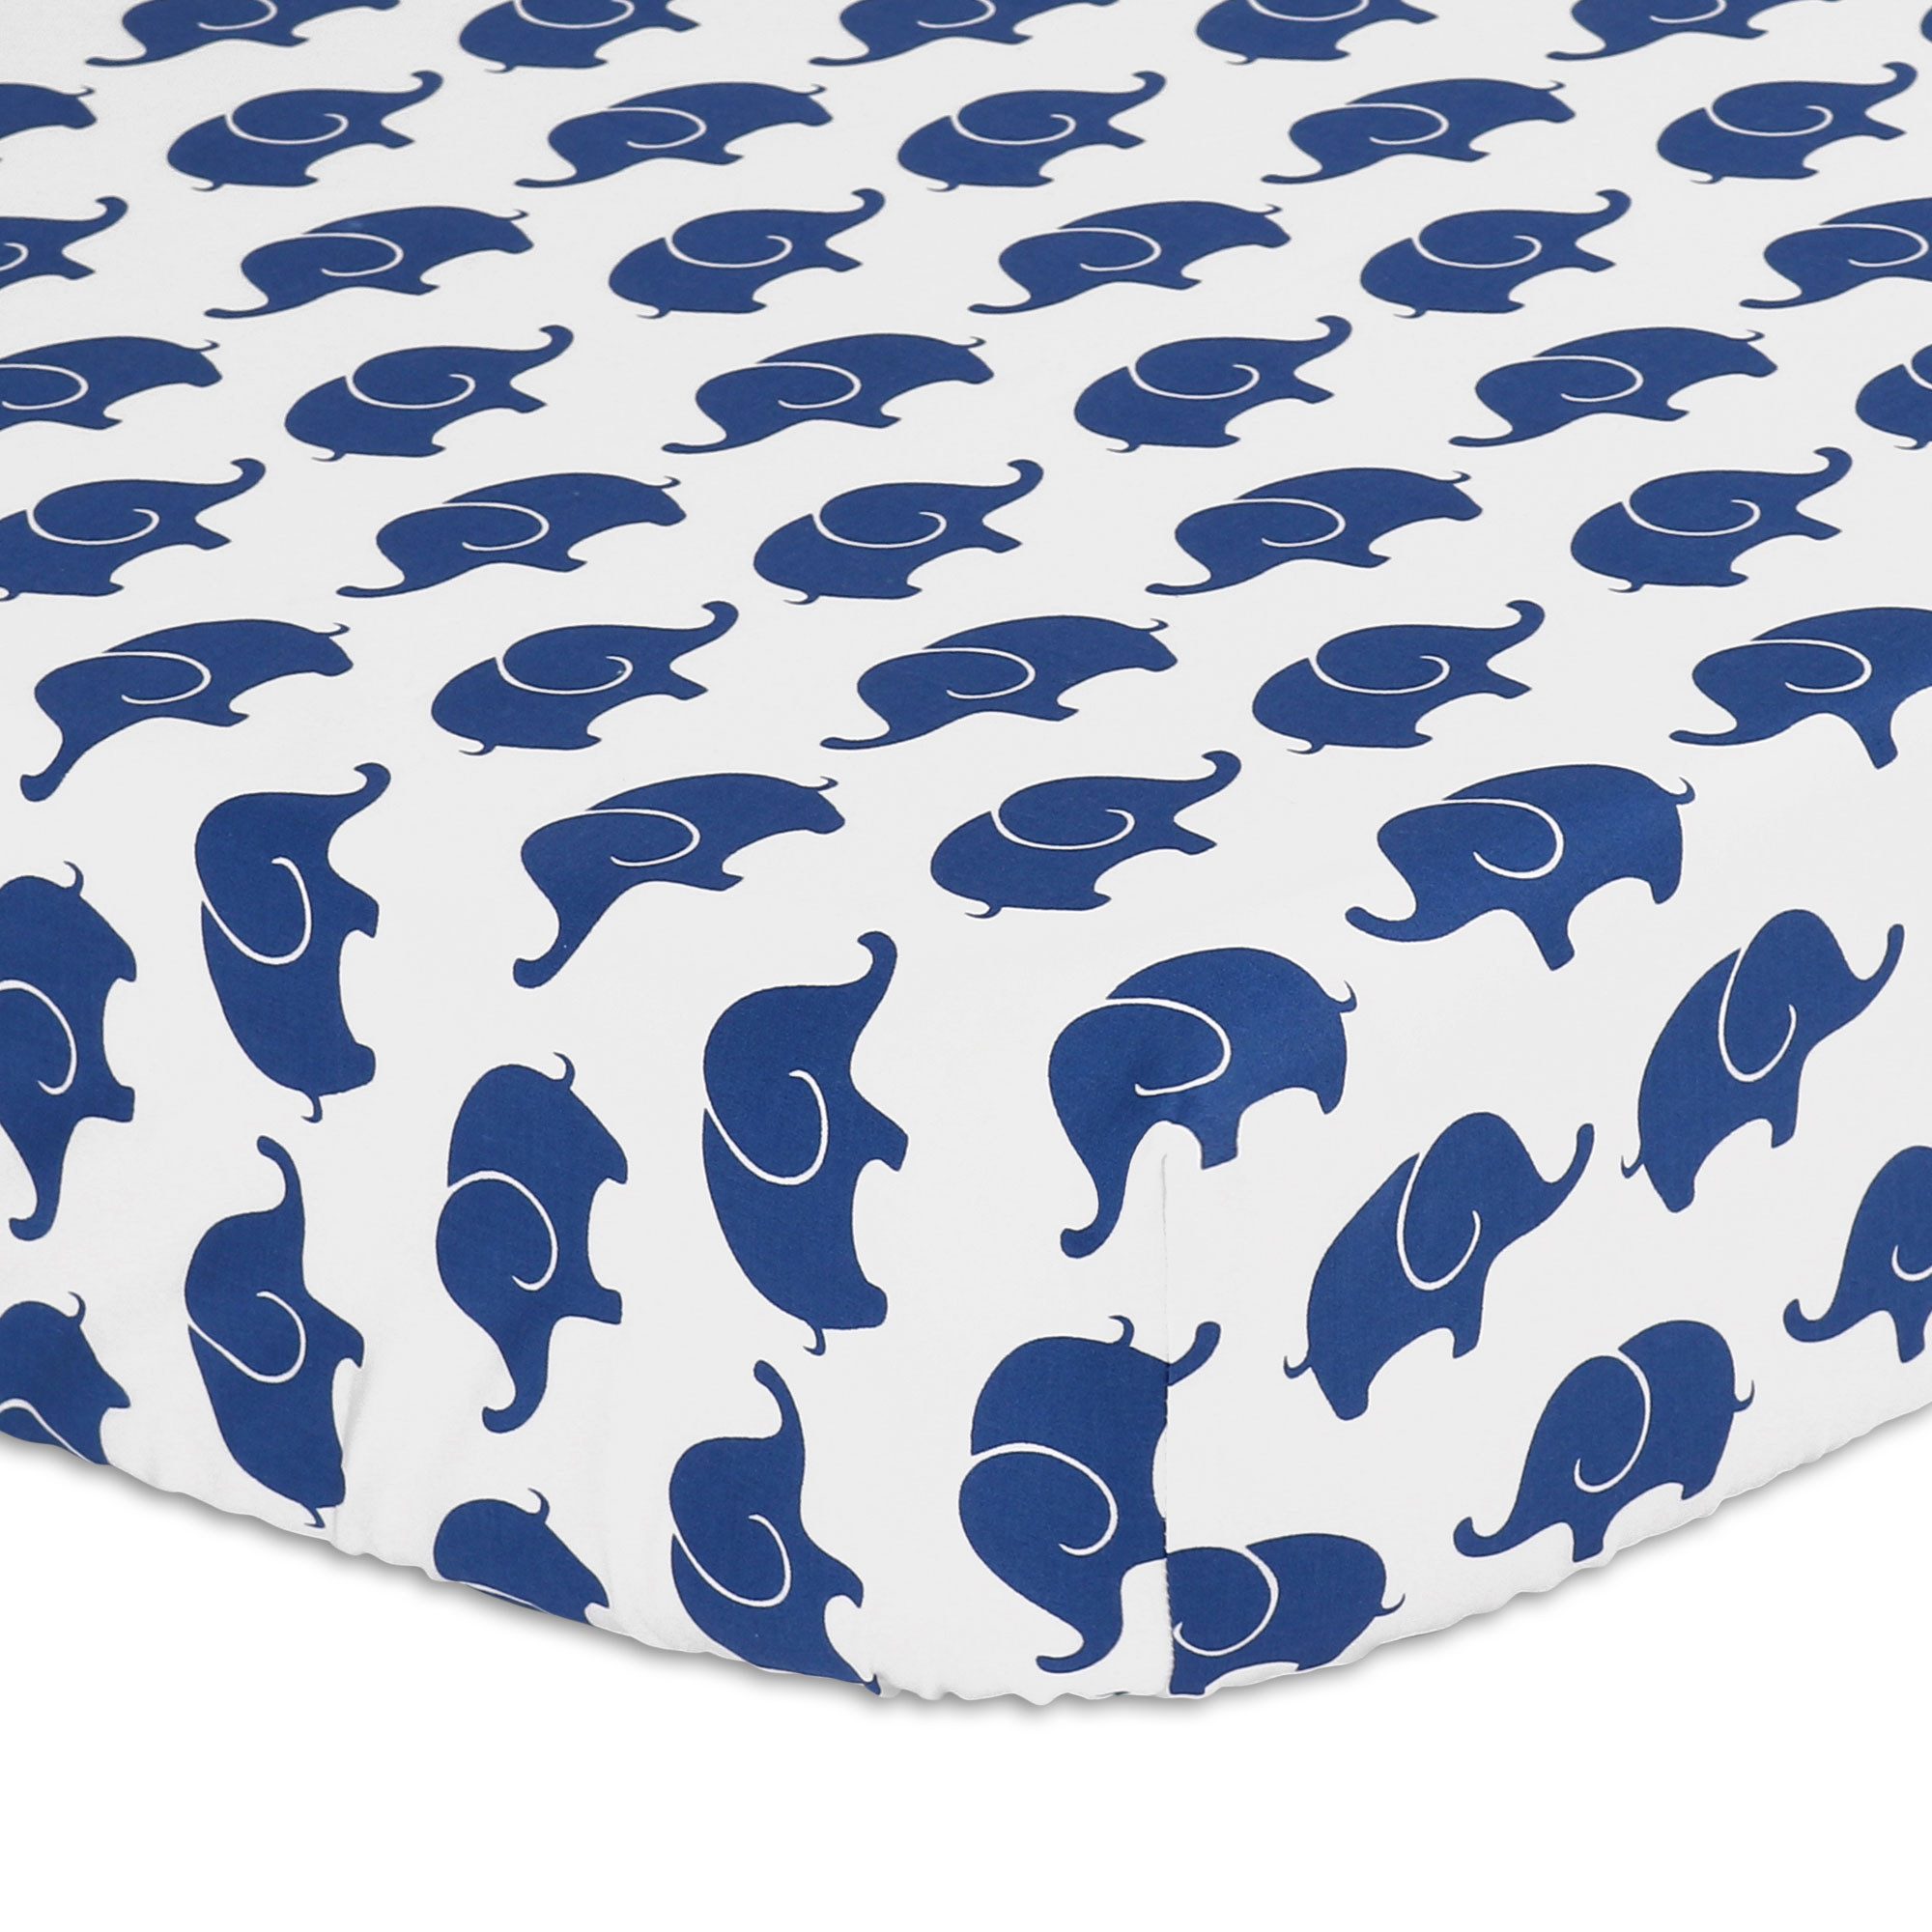 Navy Blue Elephant Fitted Crib Sheet by The Peanut Shell